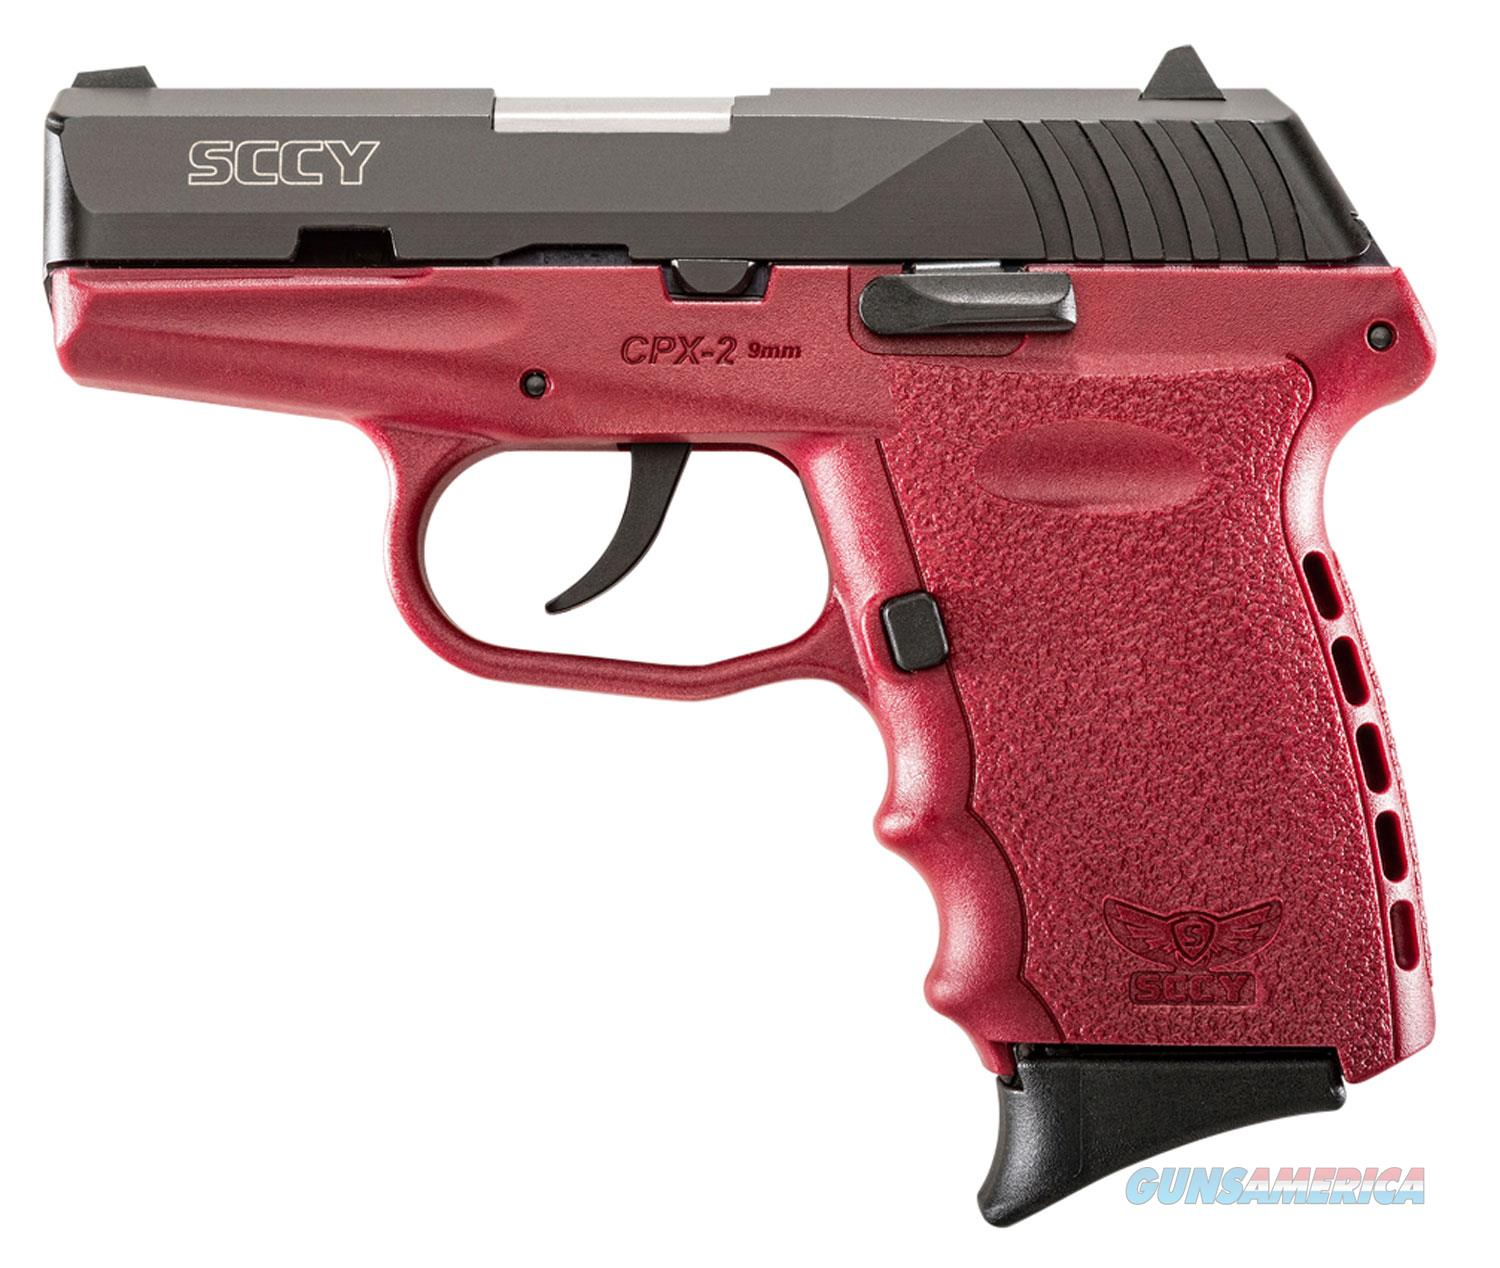 Sccy Industries Cpx2-Cb Pistol Dao 9Mm 10Rd Black/Crimson W/O Safety CPX 2CBCR  Guns > Pistols > S Misc Pistols